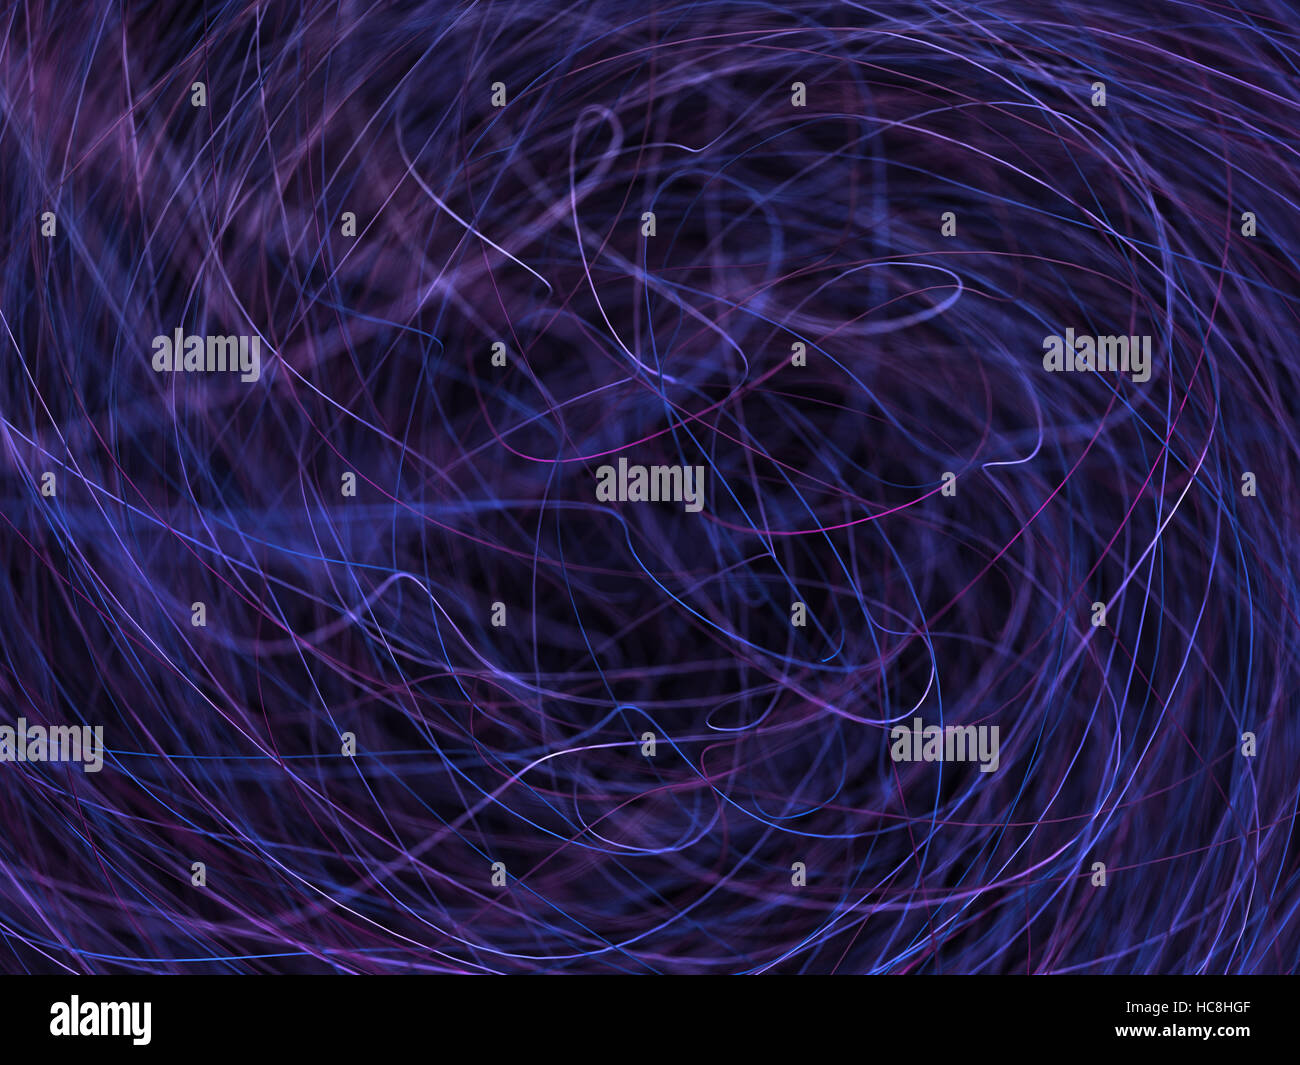 3D illustration abstract background. Tangle of colored lines. - Stock Image